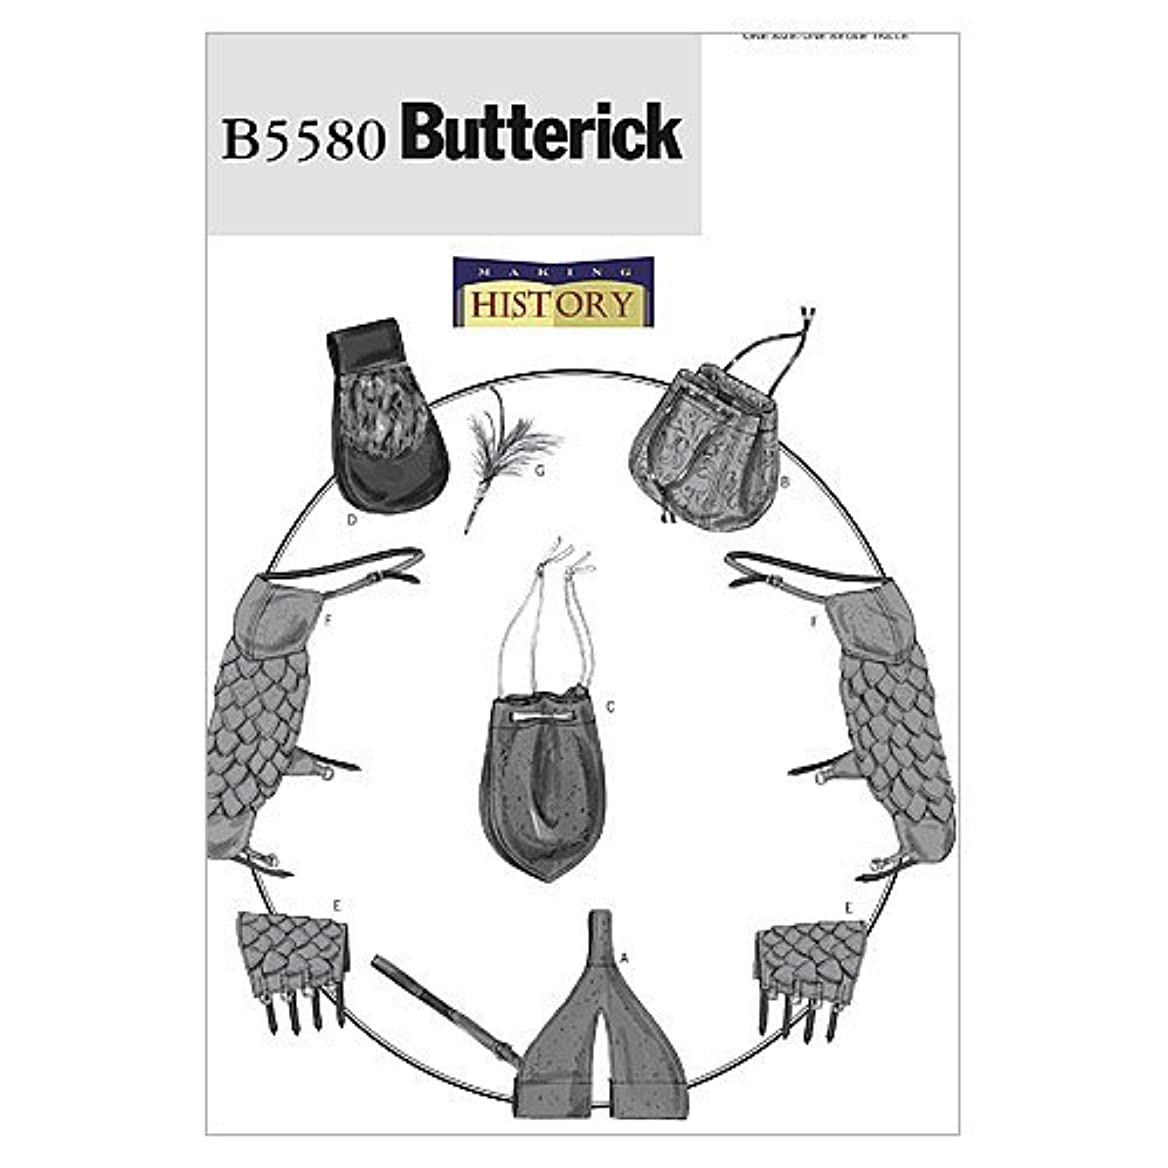 BUTTERICK PATTERNS B5580 Sword Holder, Bags, Pouch, Bracers, Shoulder Covers and Feather Pin, One Size Only orkaxleuor70